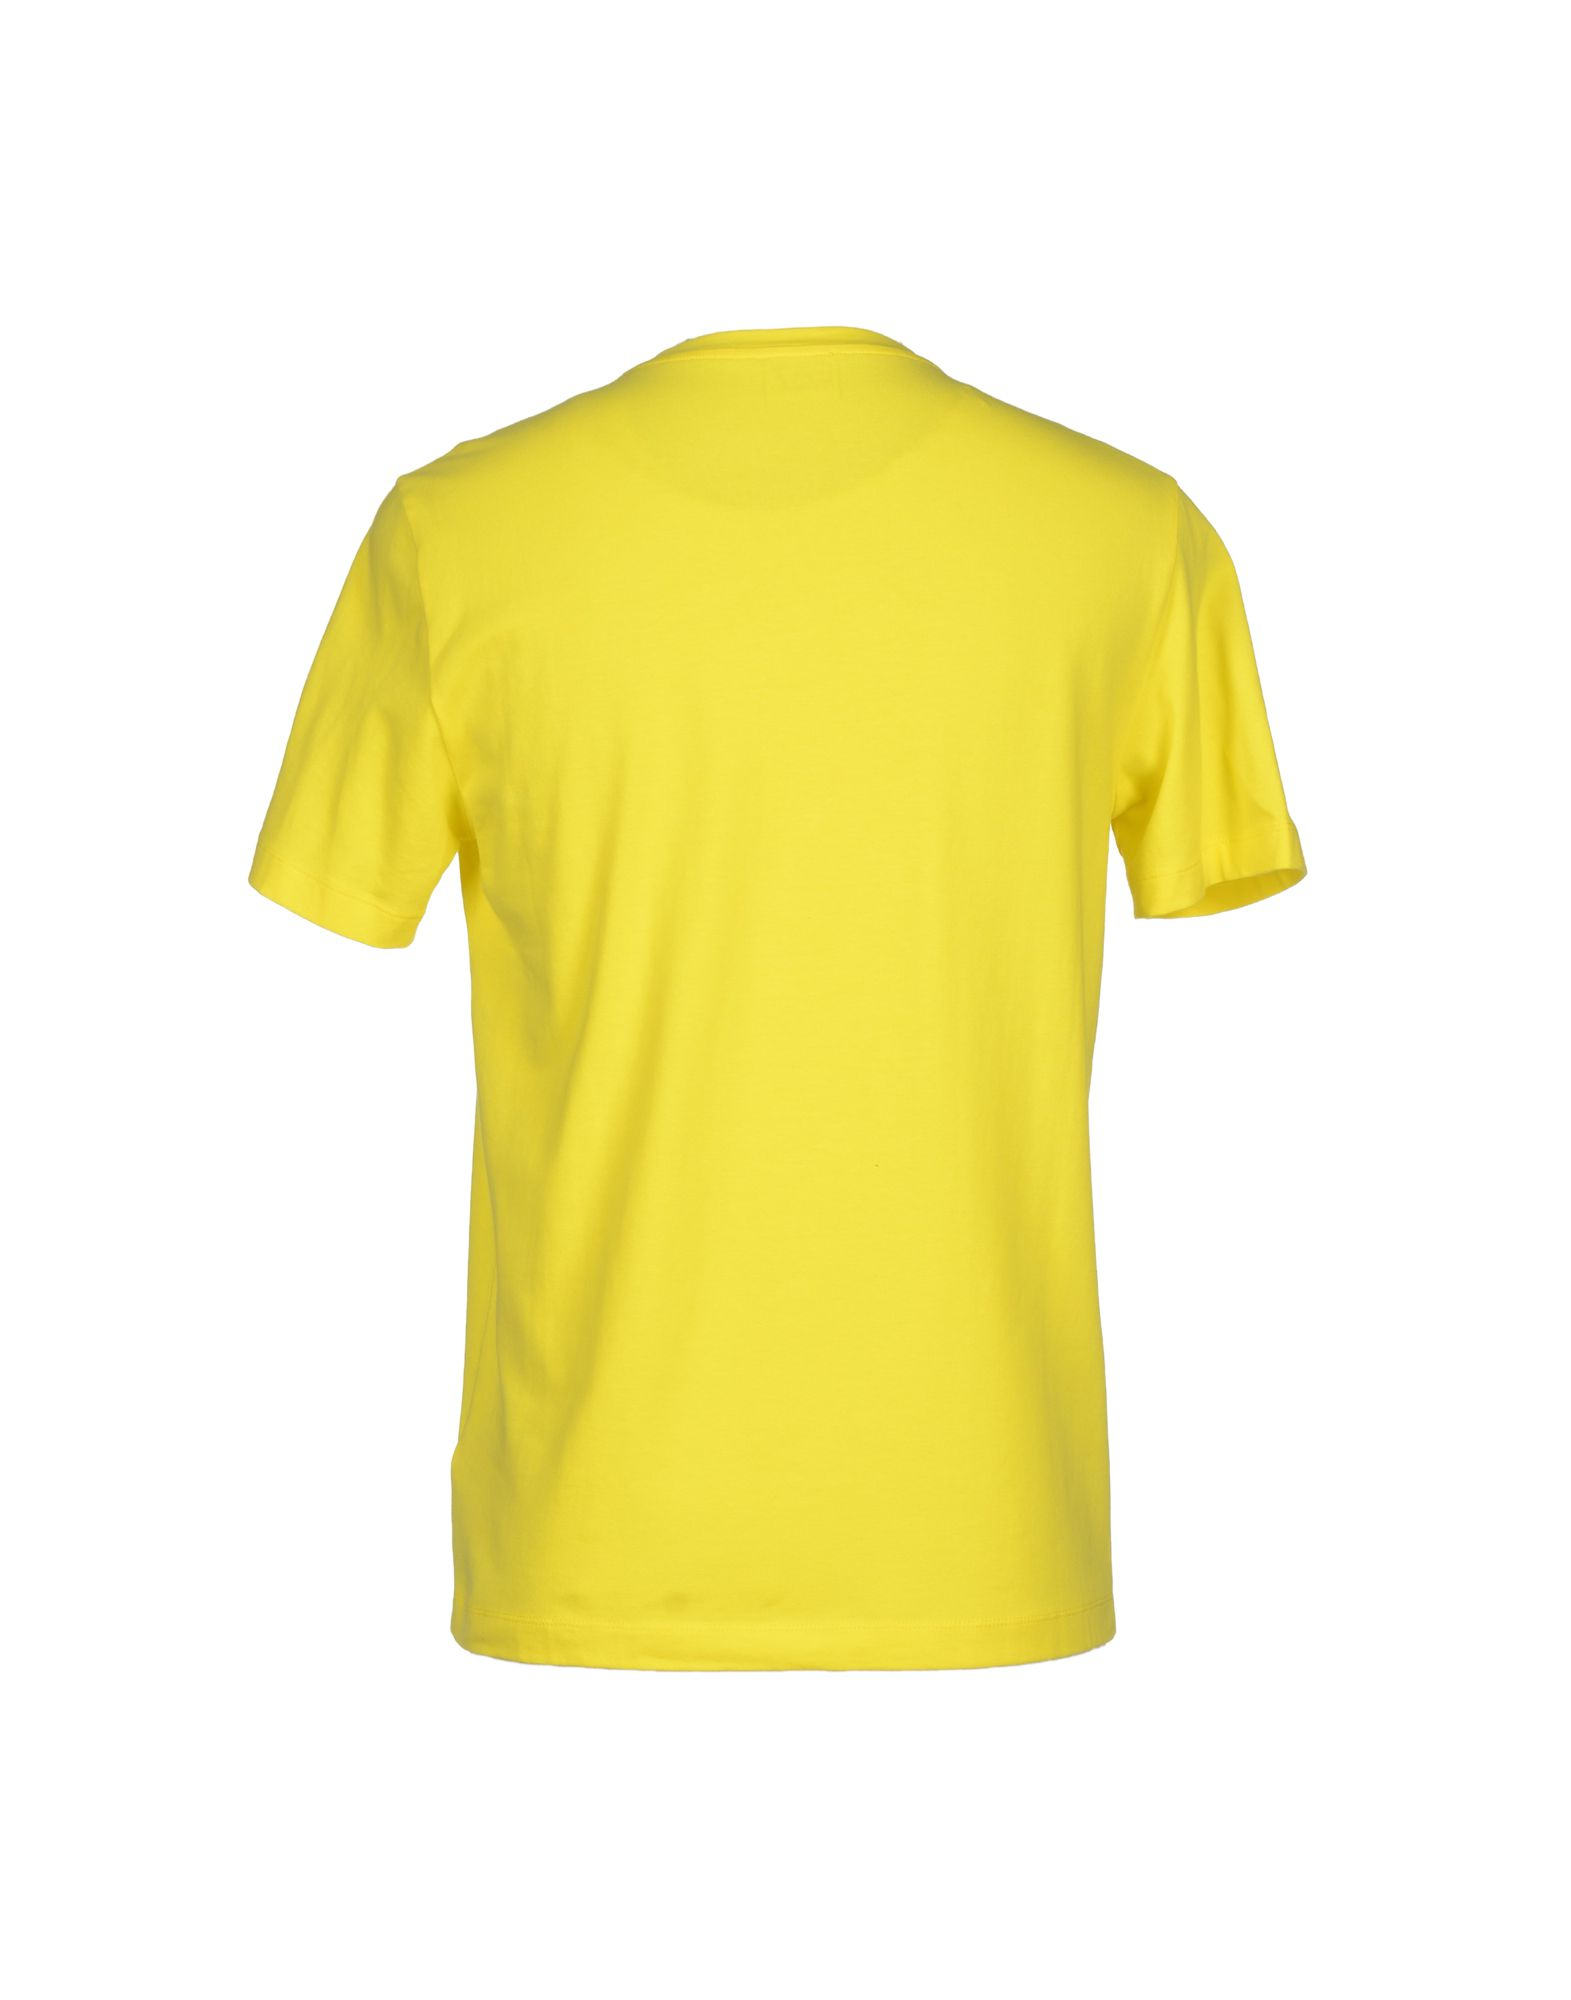 yellow t shirt for men